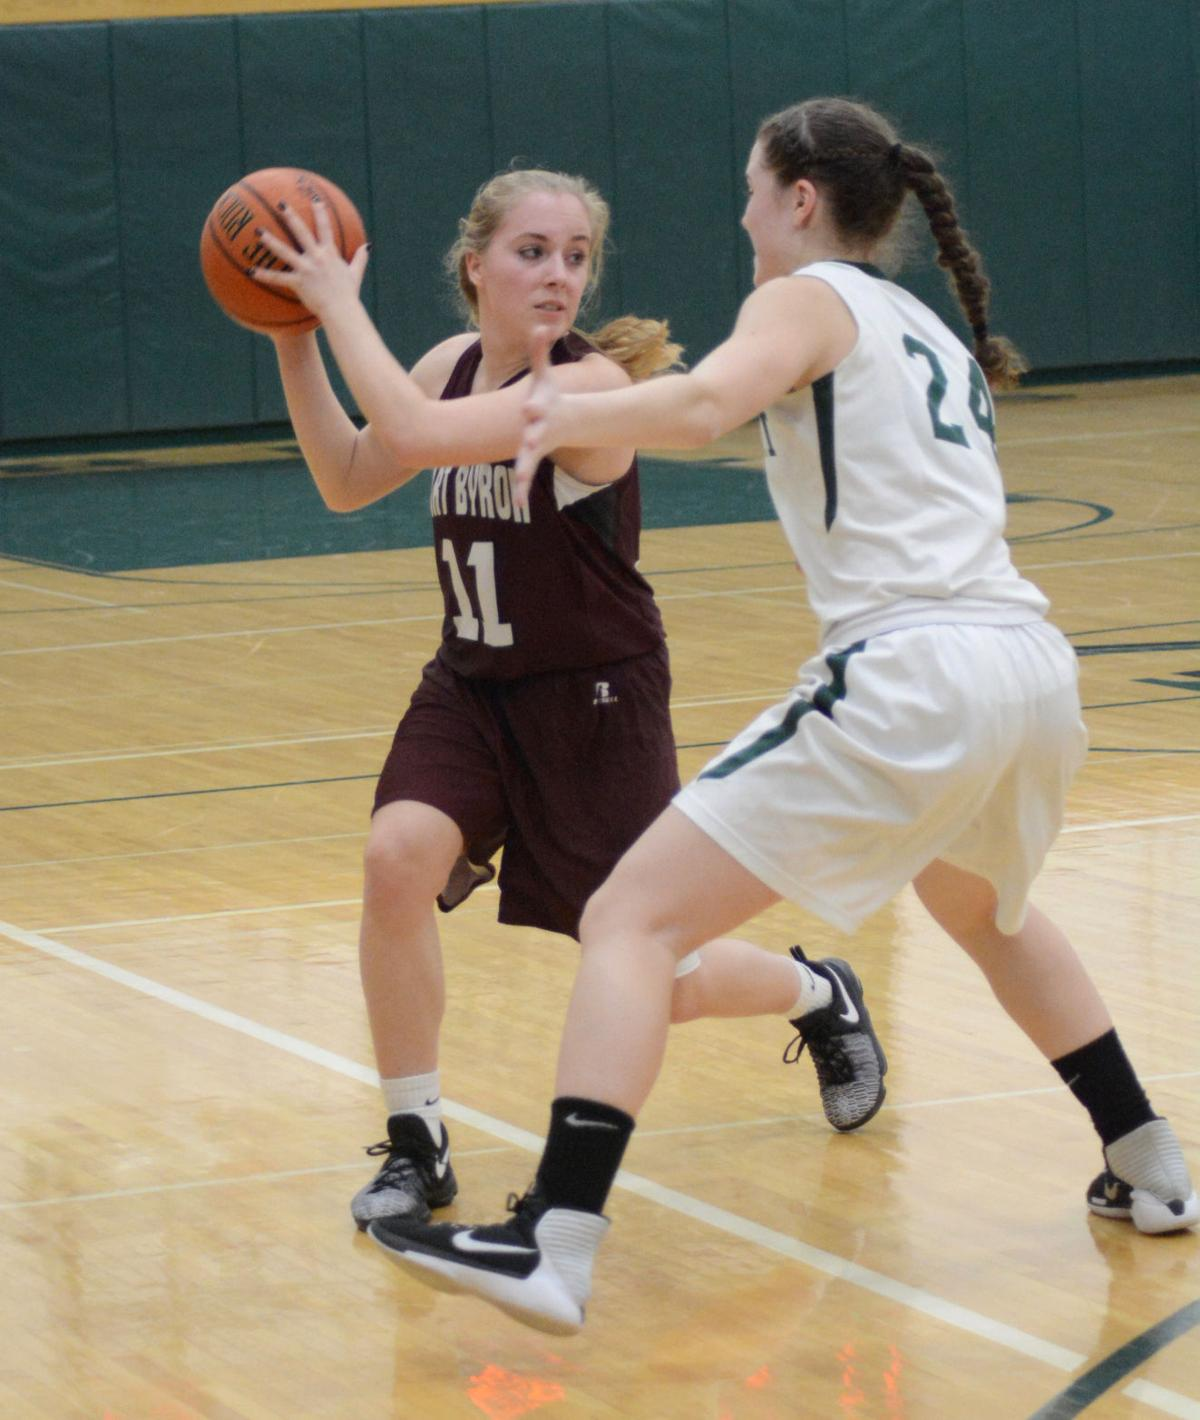 weedsport women Weedsport basketball 403 likes supporting, promoting,and providing information related to weedsport basketball at all levels for coaches, players.